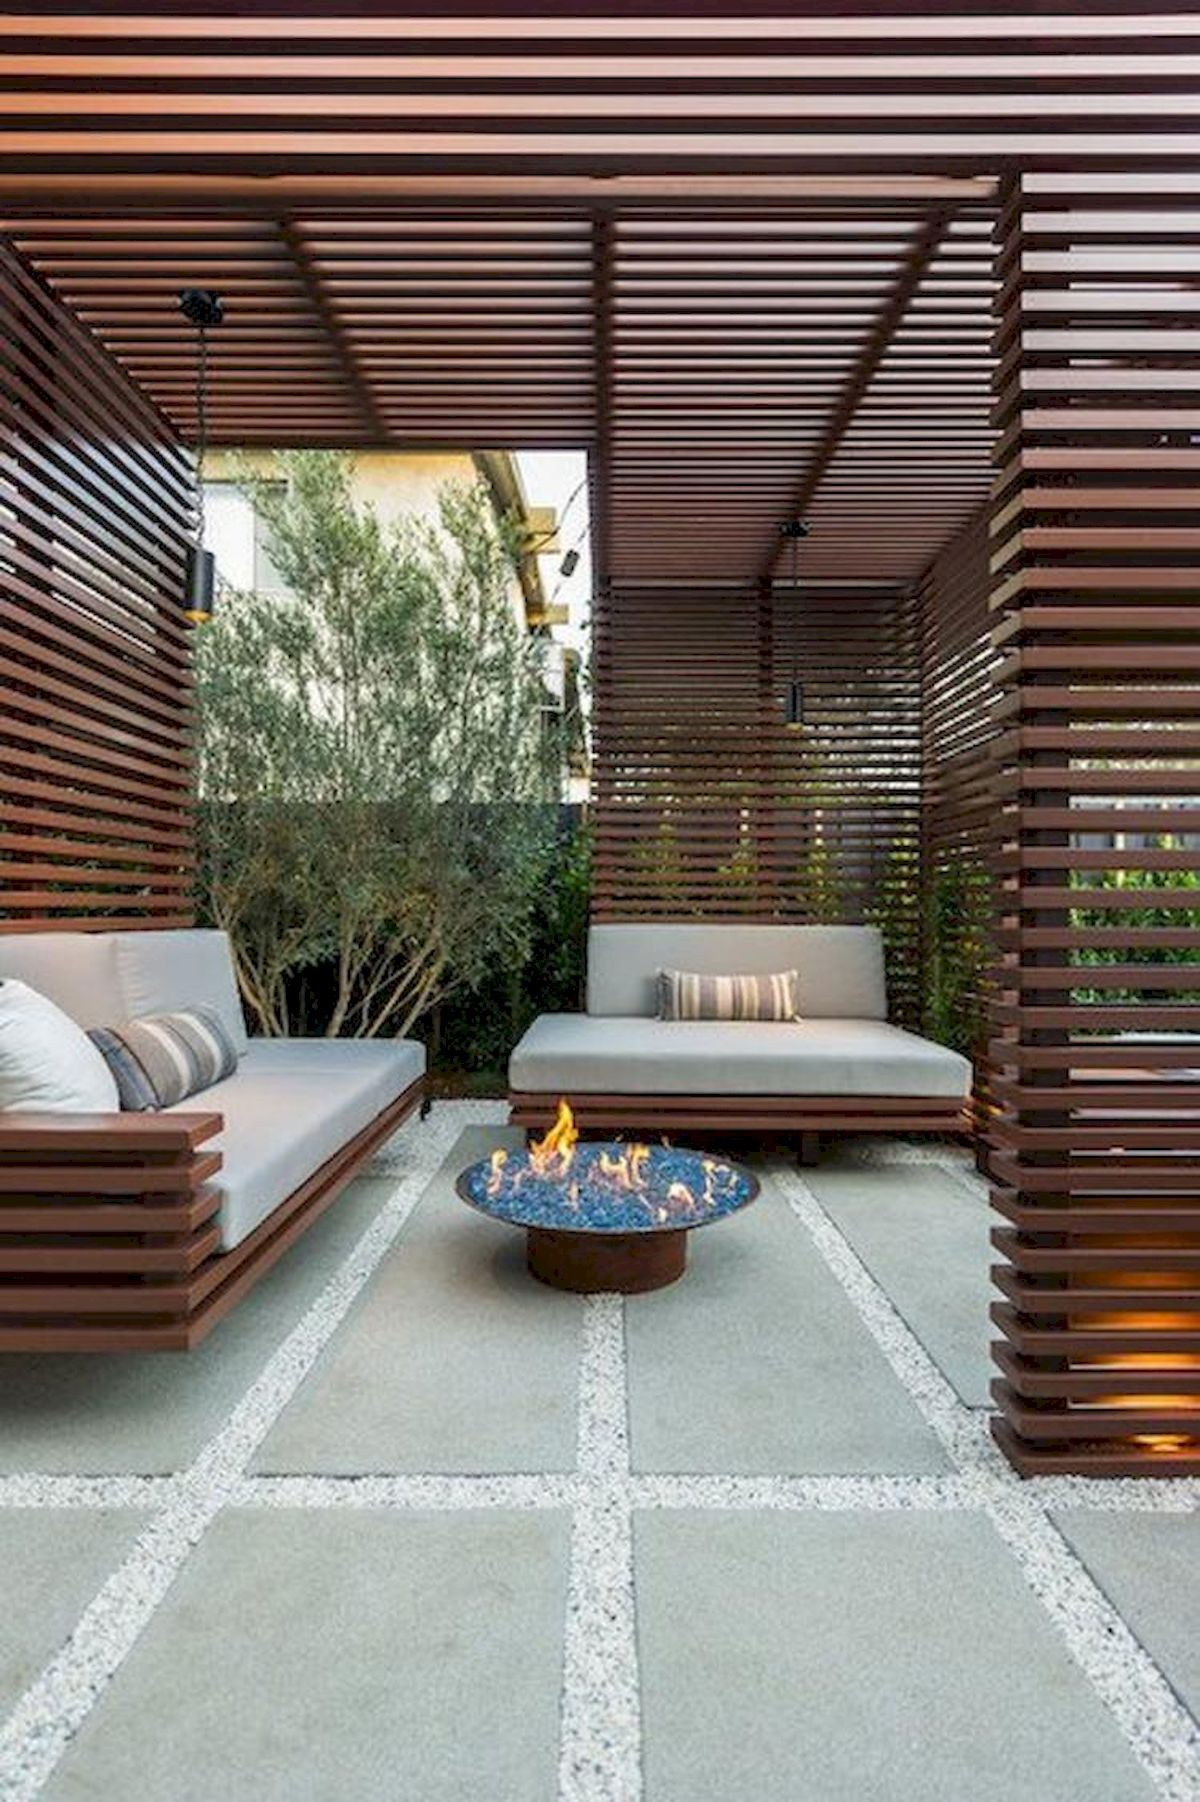 60 Awesome Backyard Privacy Design and Decor Ideas (21)